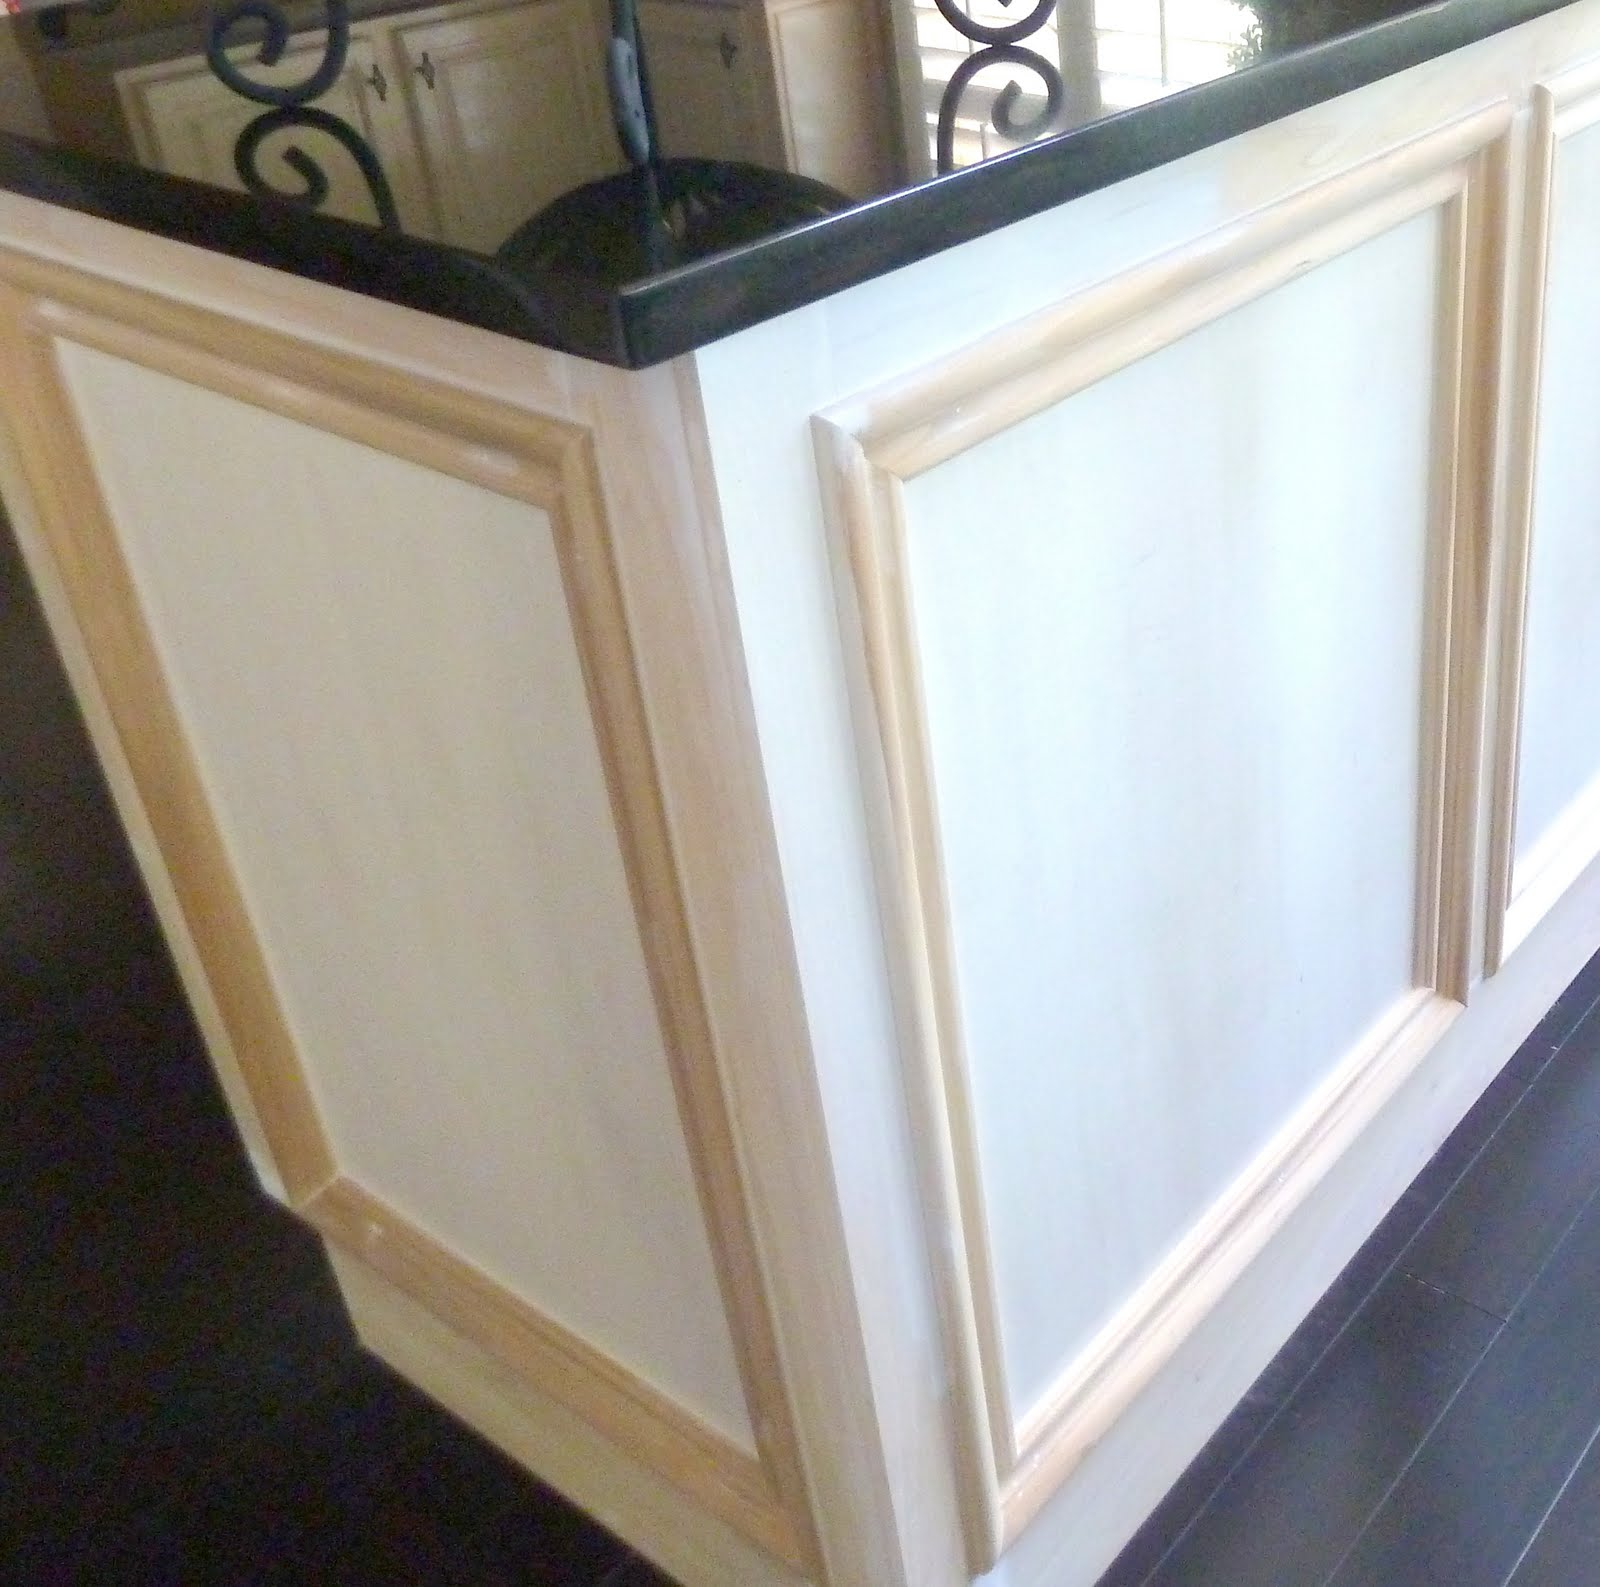 Add Molding To Kitchen Cabinets: Our Fifth House